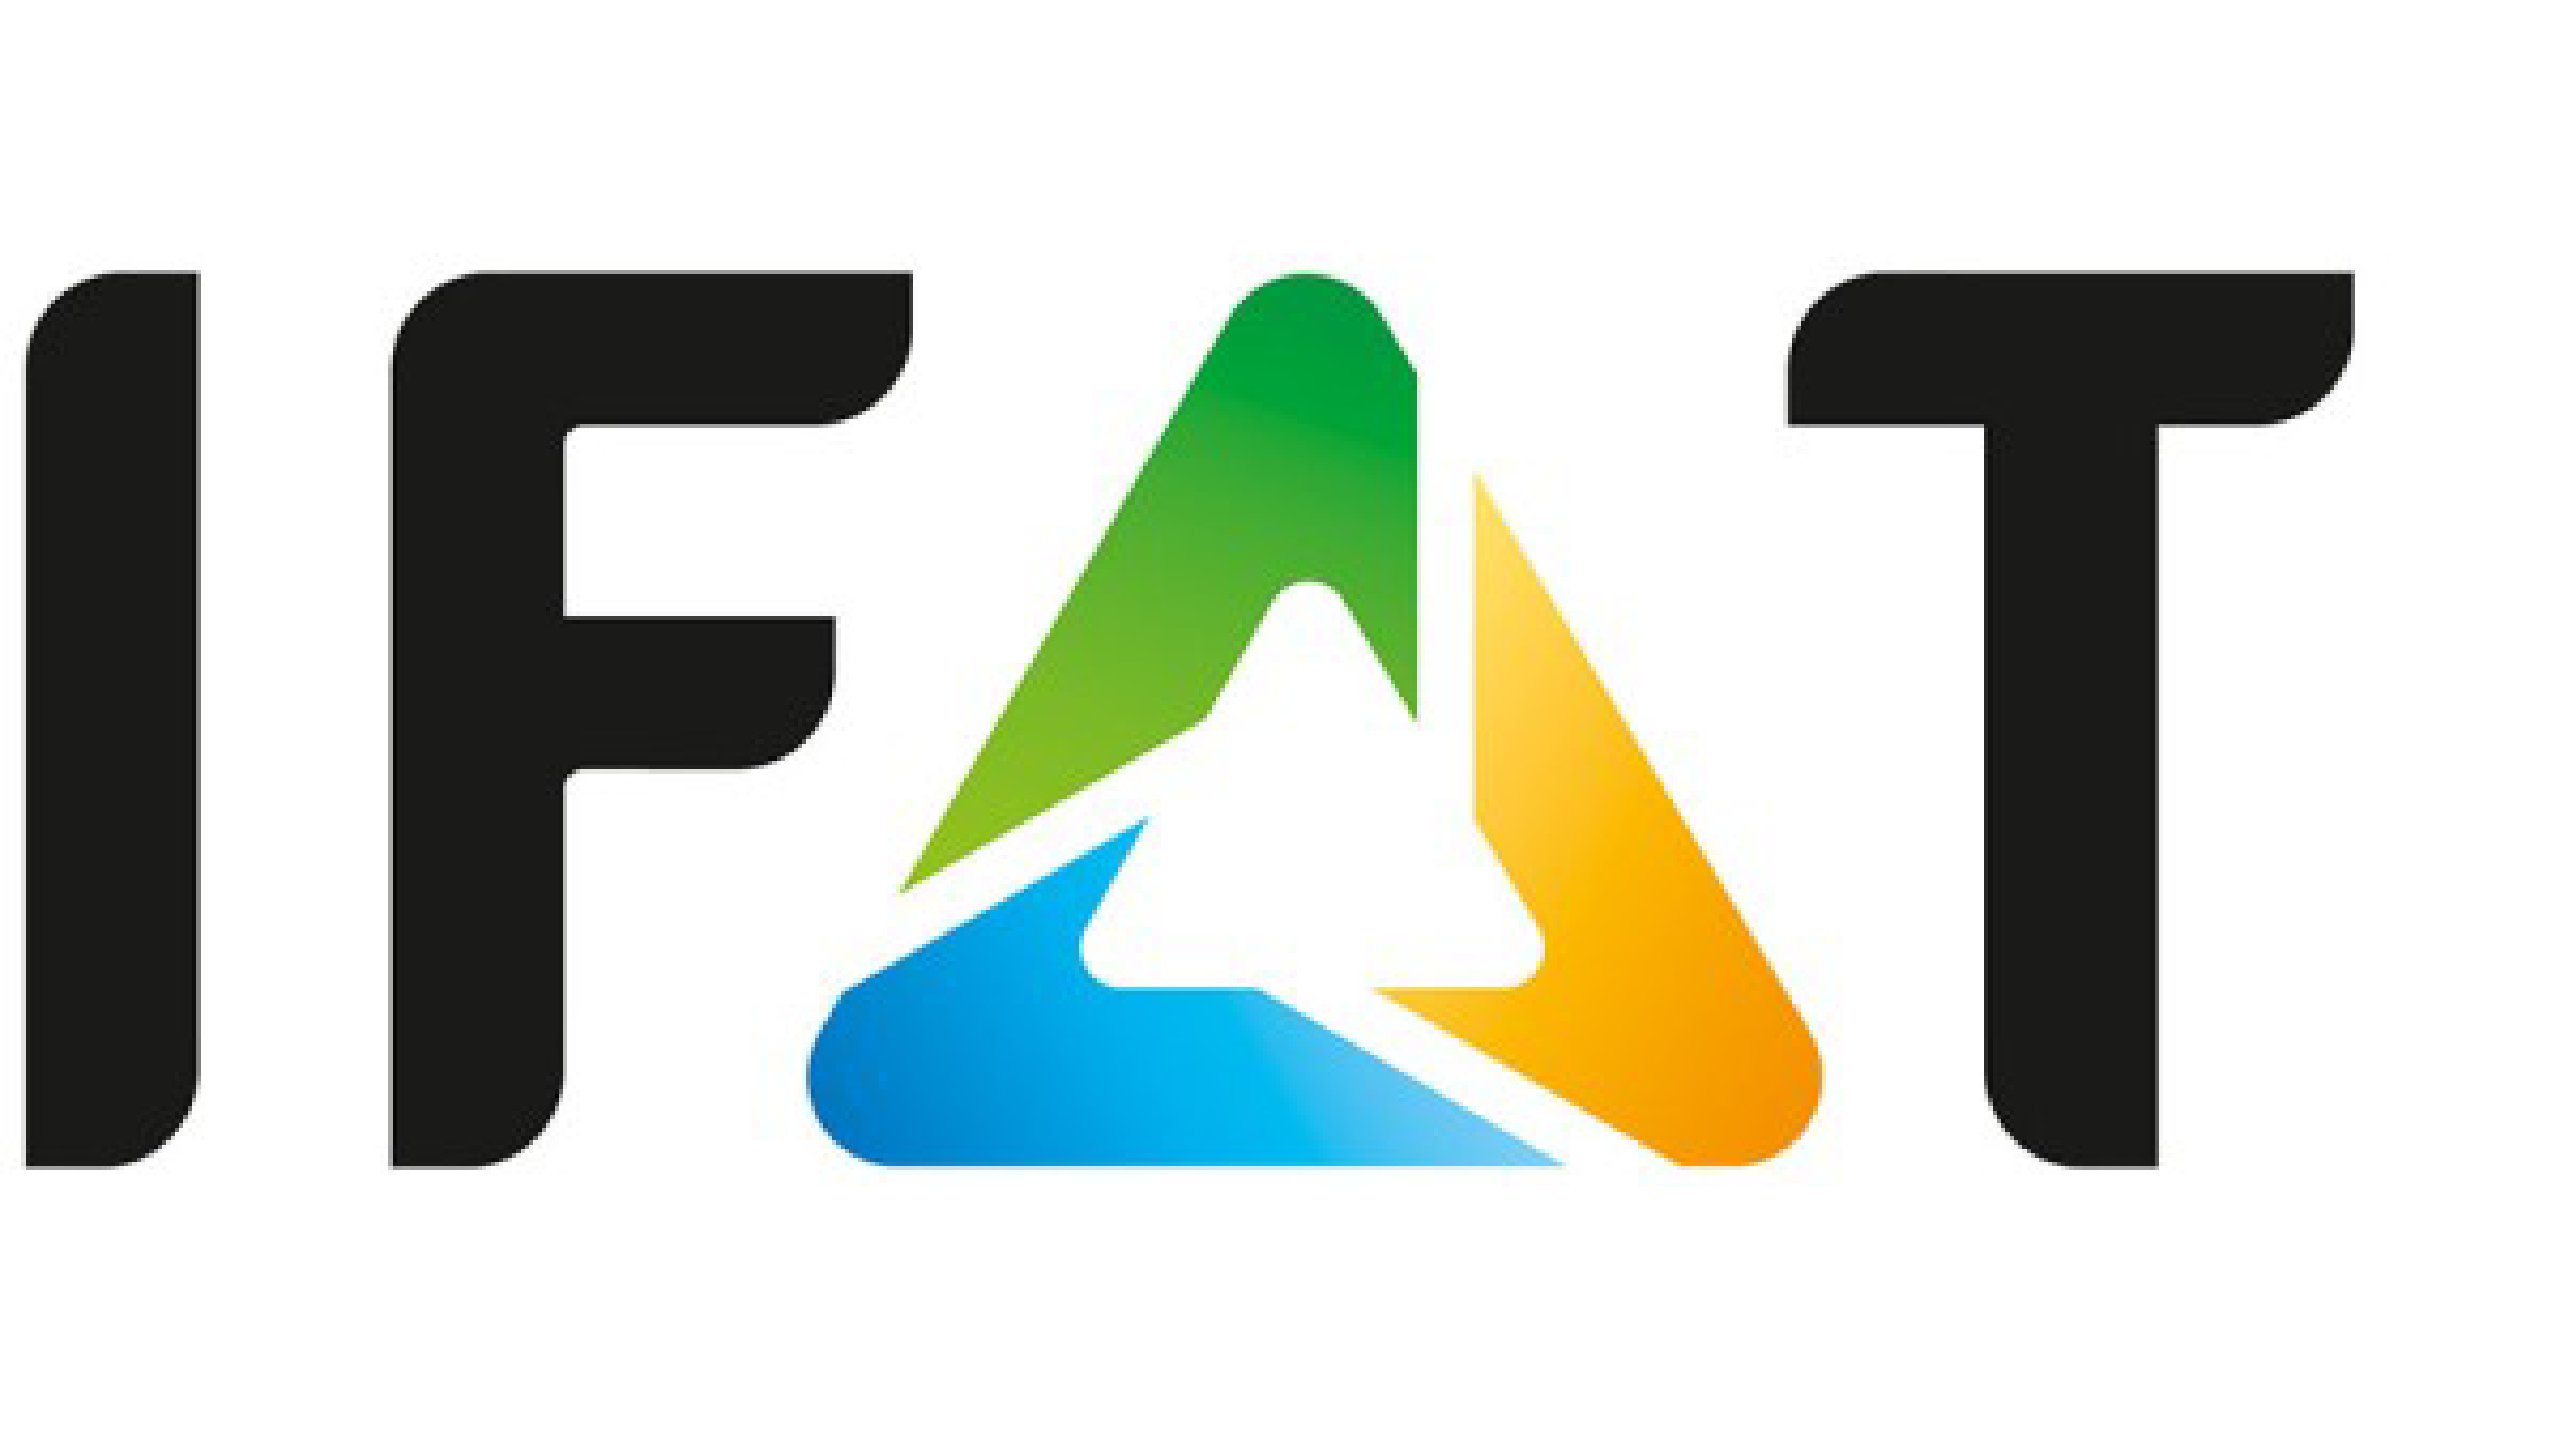 events ifat logo 16 9